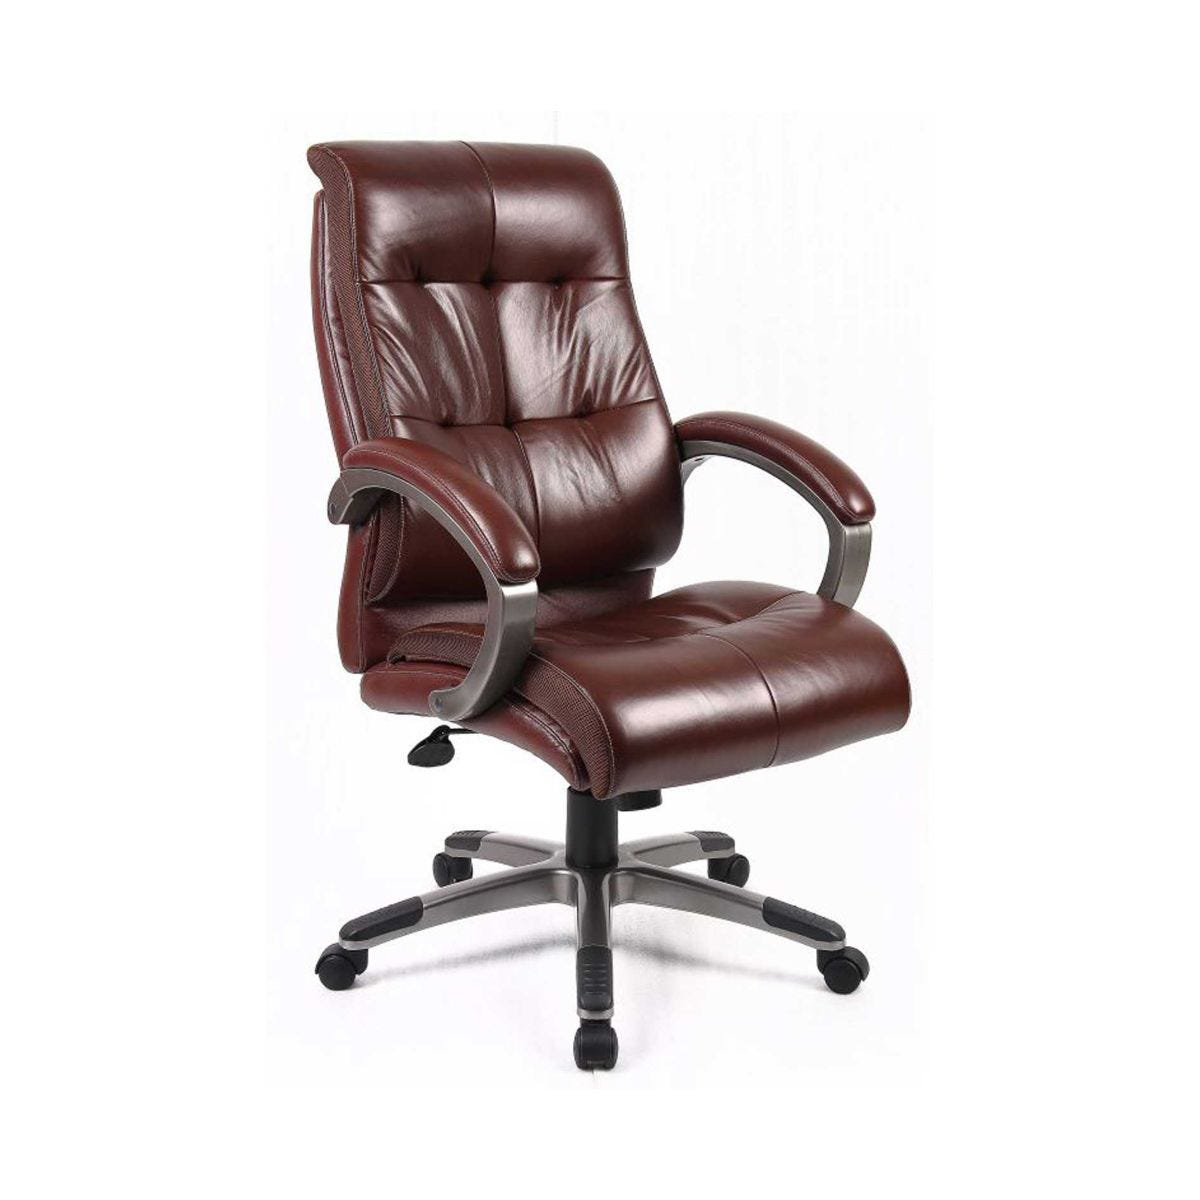 chair is a contemporary chair suitable for any executive office